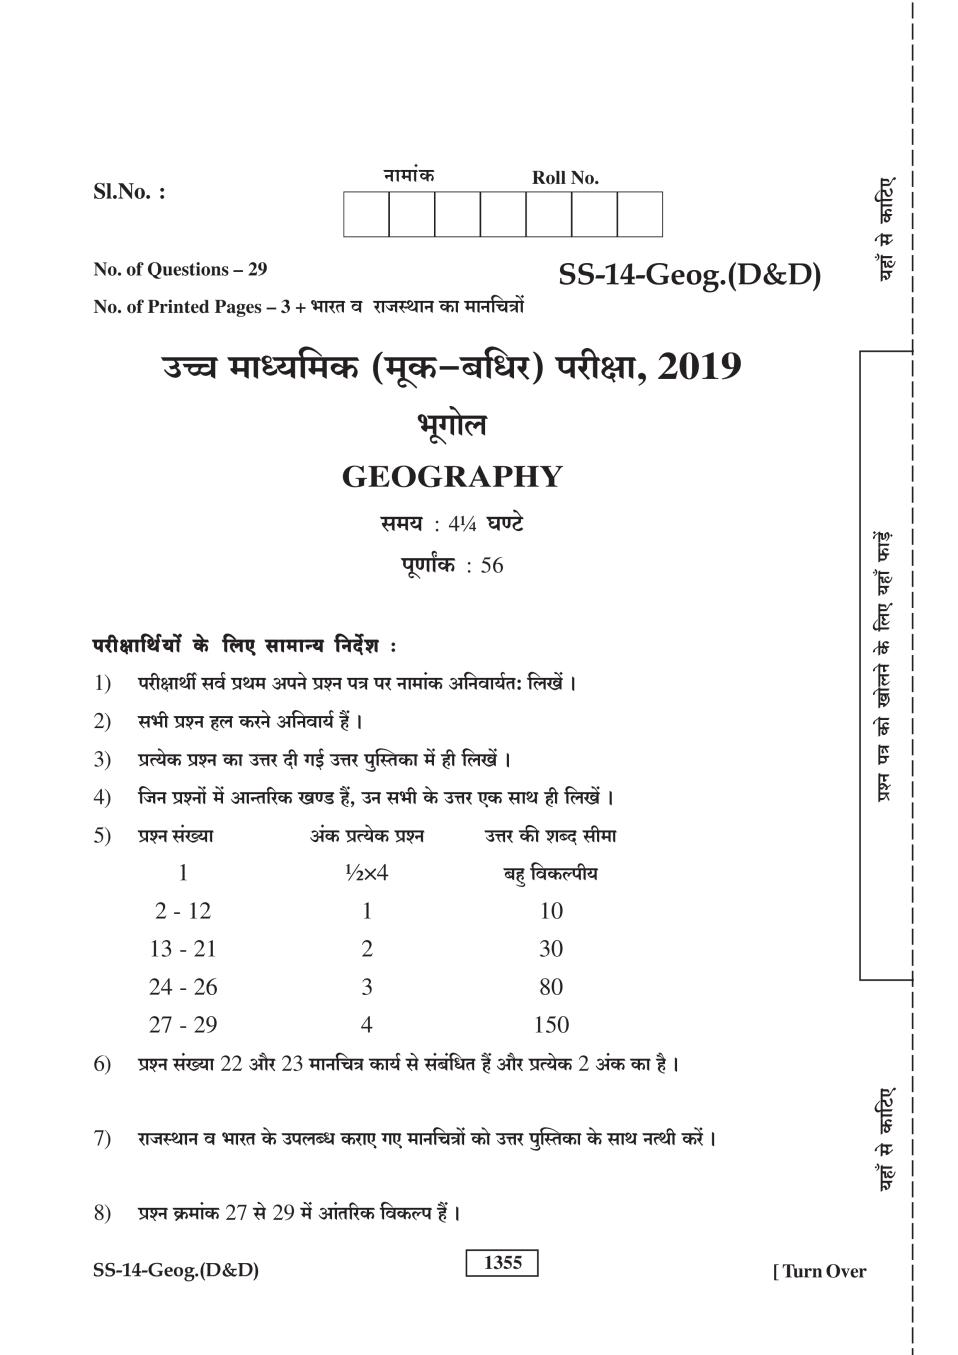 Rajasthan Board Sr. Secondary Geography DD Question Paper